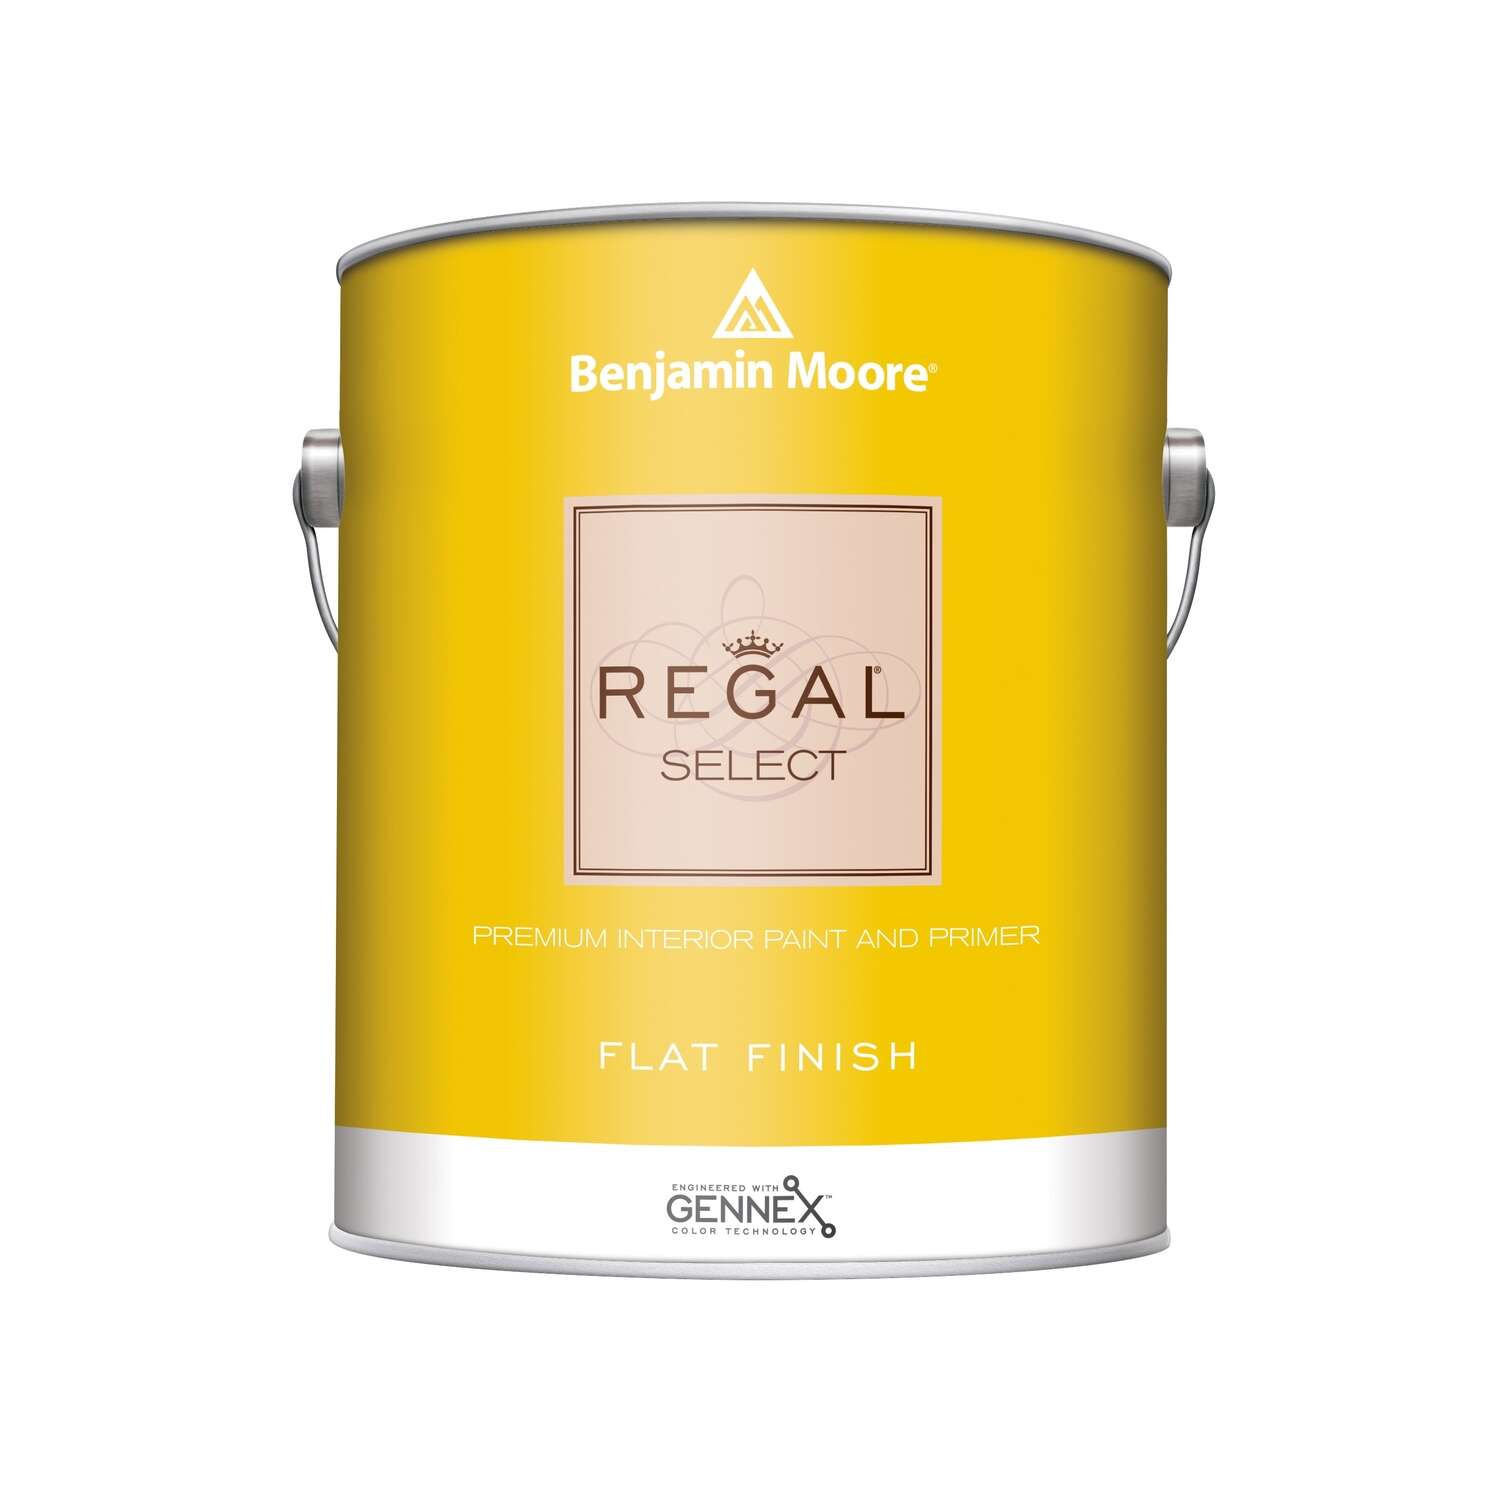 Benjamin Moore  Regal Select  Flat  Base 3  Paint and Primer  Interior  1 qt.